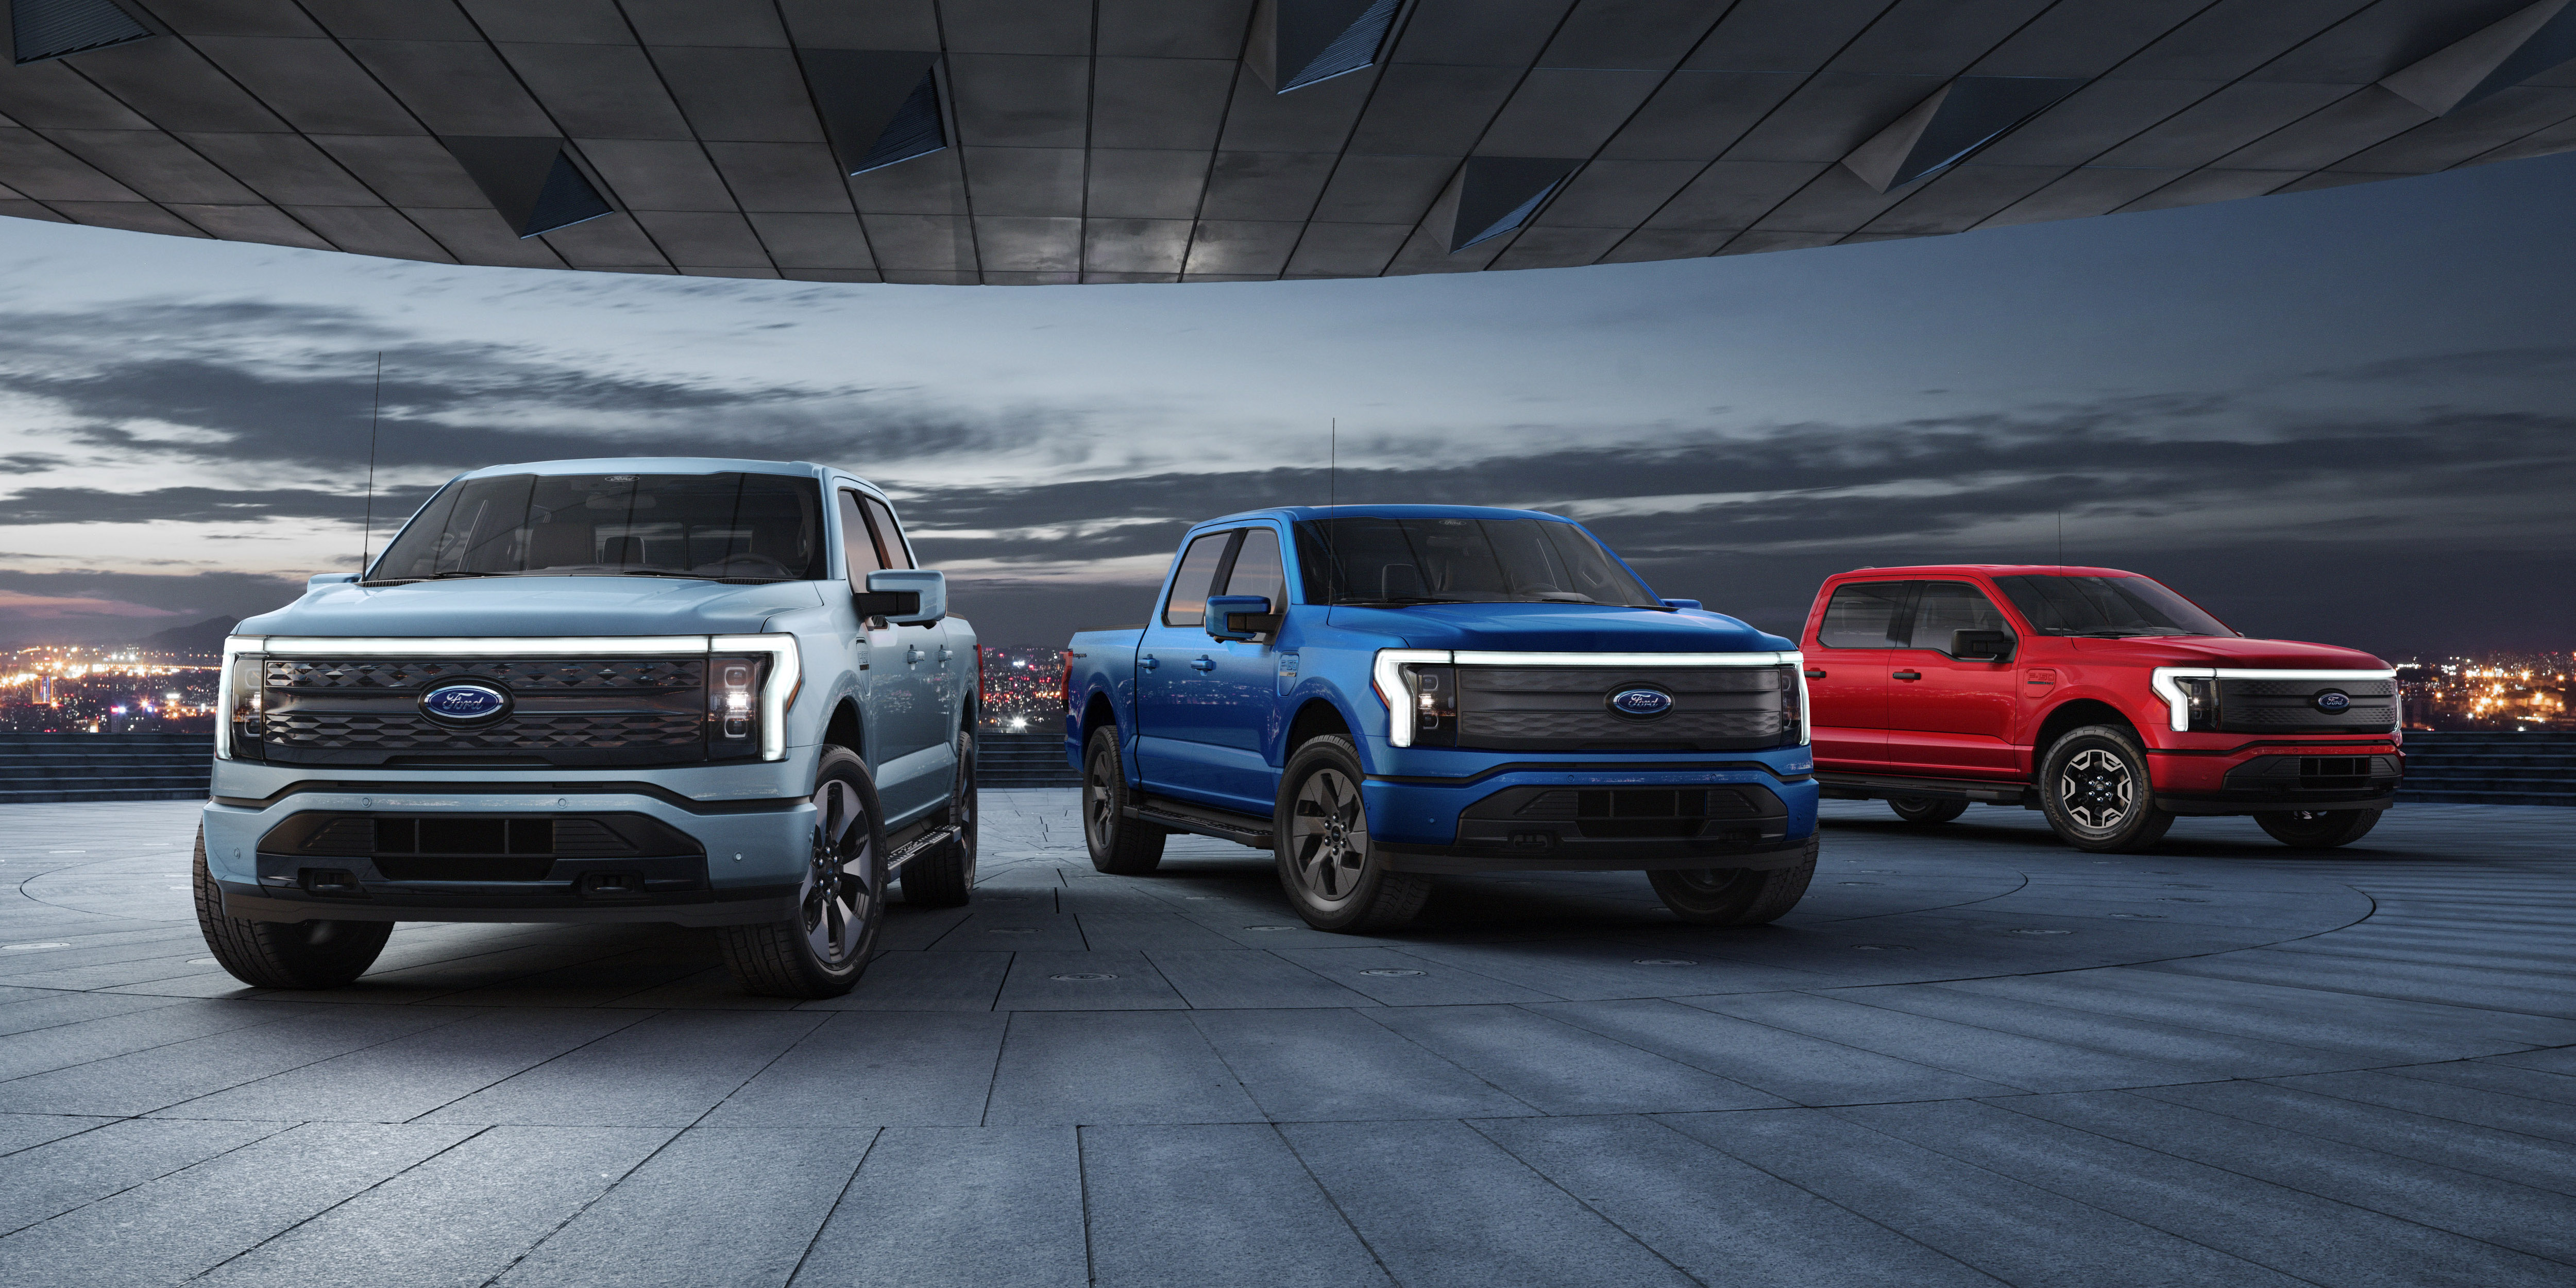 Ford F150 Lightning electric pickup has now 130,000 reservations — is it good or bad? thumbnail